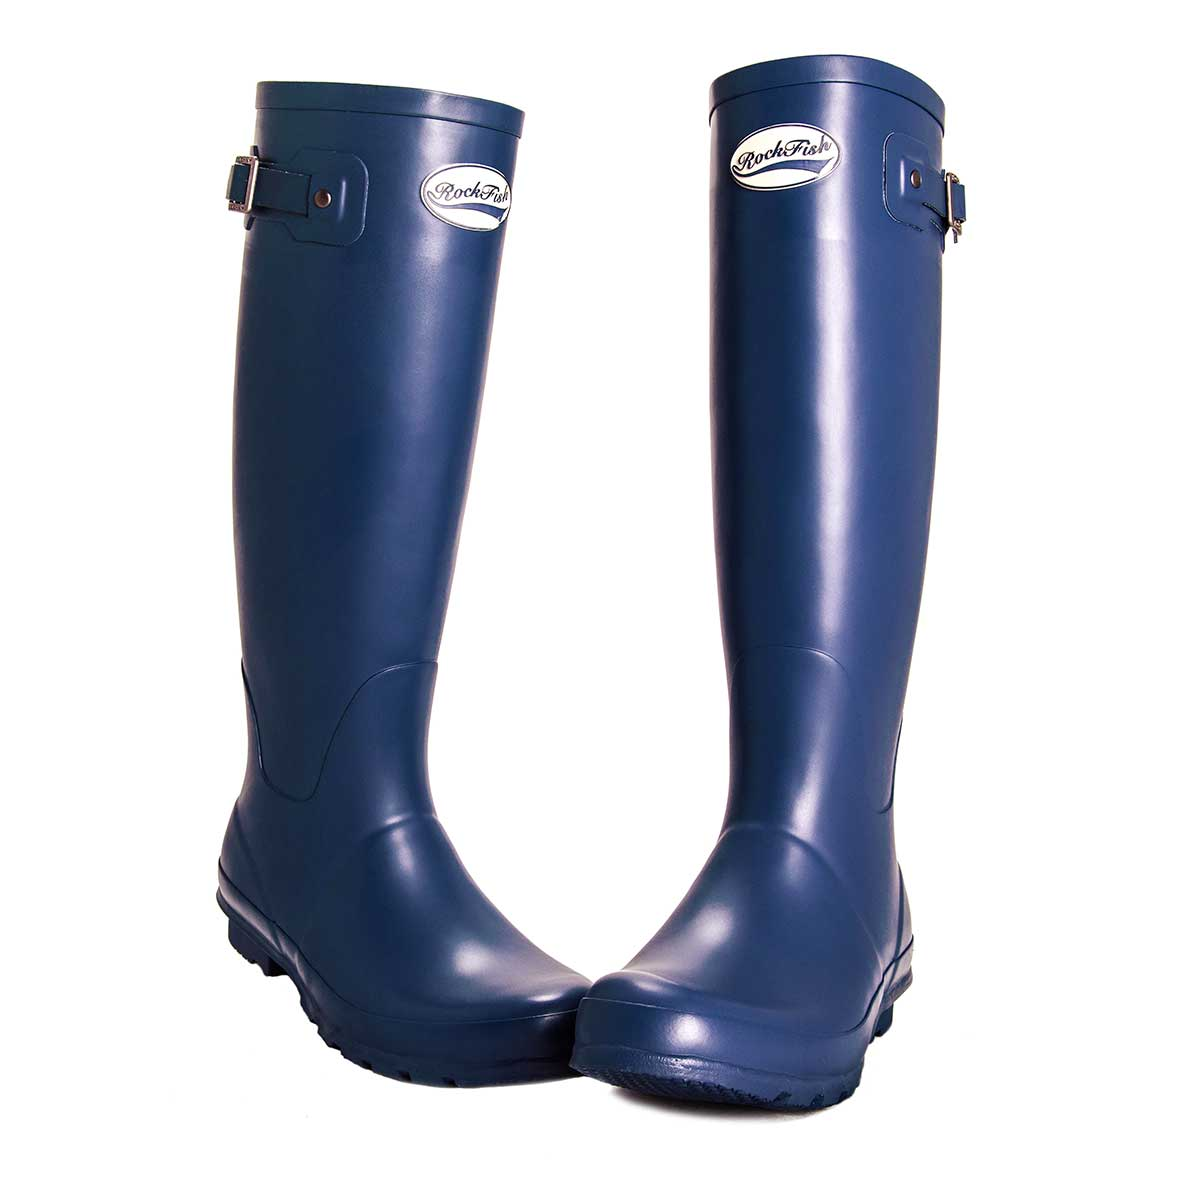 Rockfish Original Wellington Boots Tall Matt